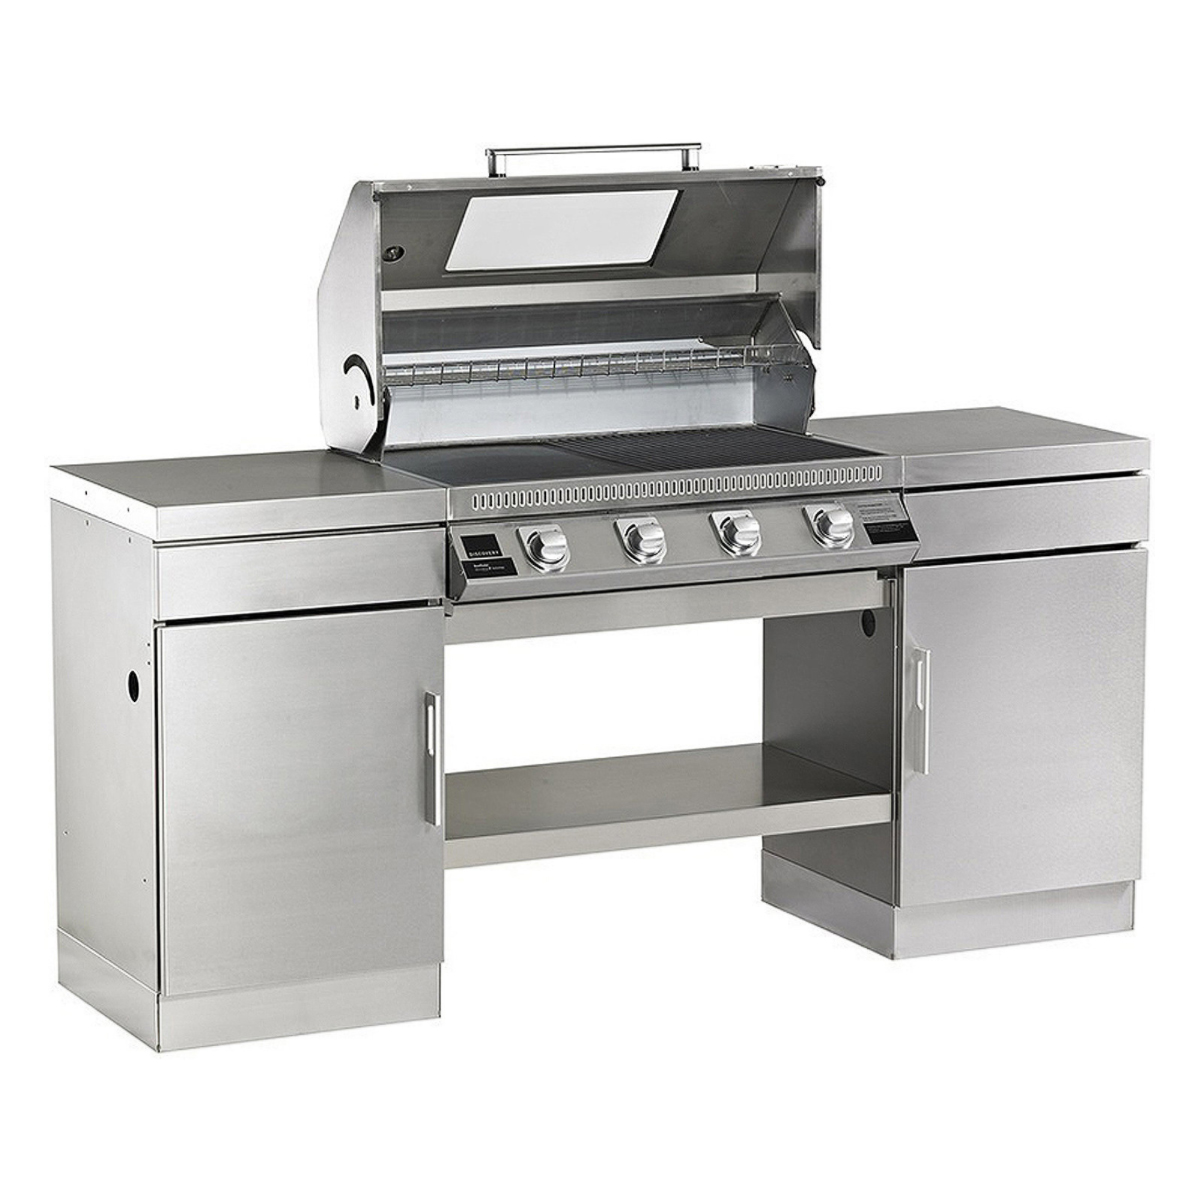 Beefeater 79640 Discovery 1100S Outdoor LPG BBQ